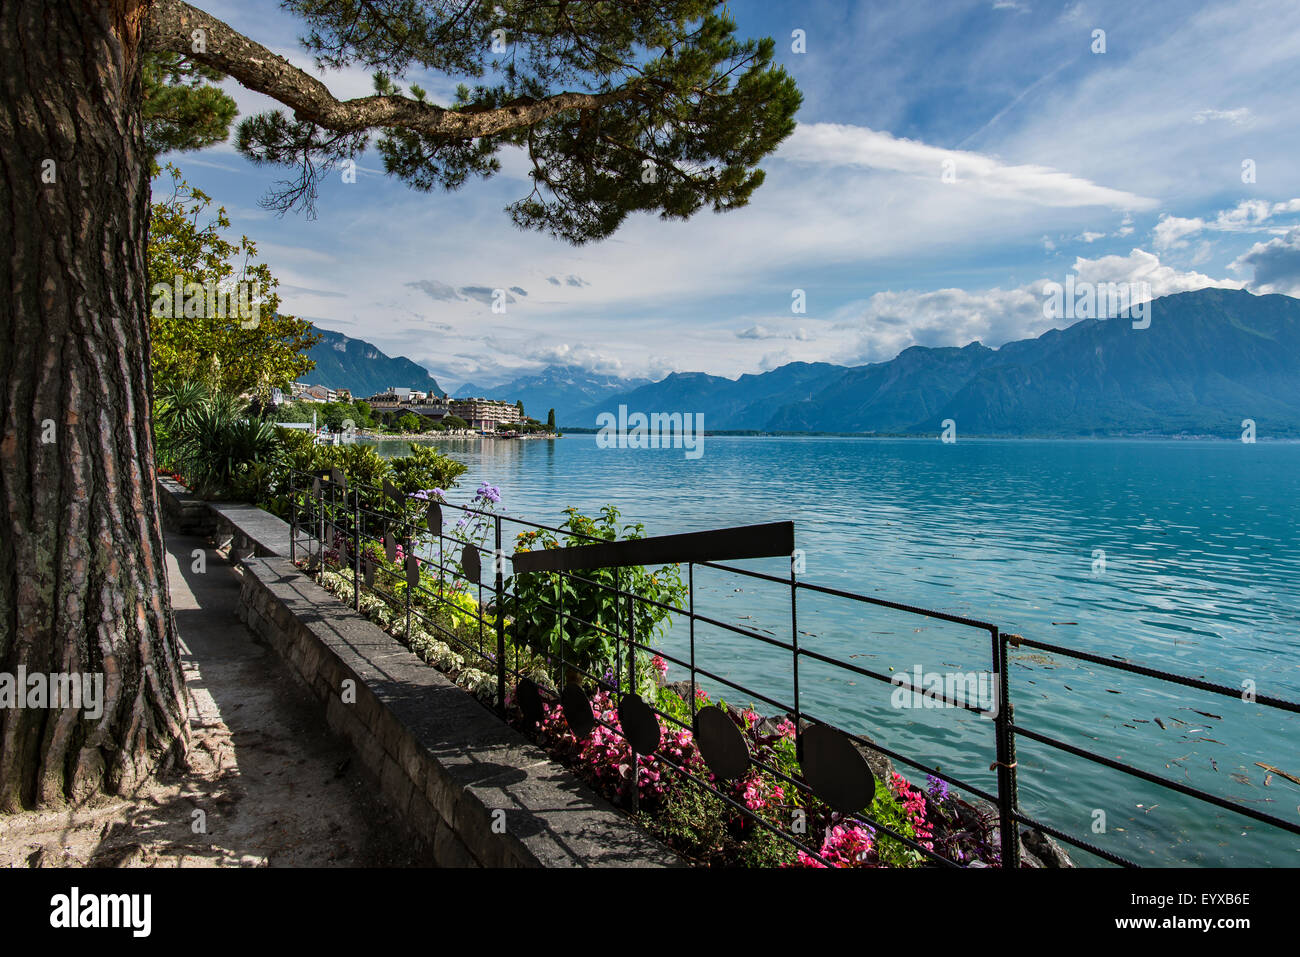 View across Lac Leman from the Montreux boardwalk - Stock Image